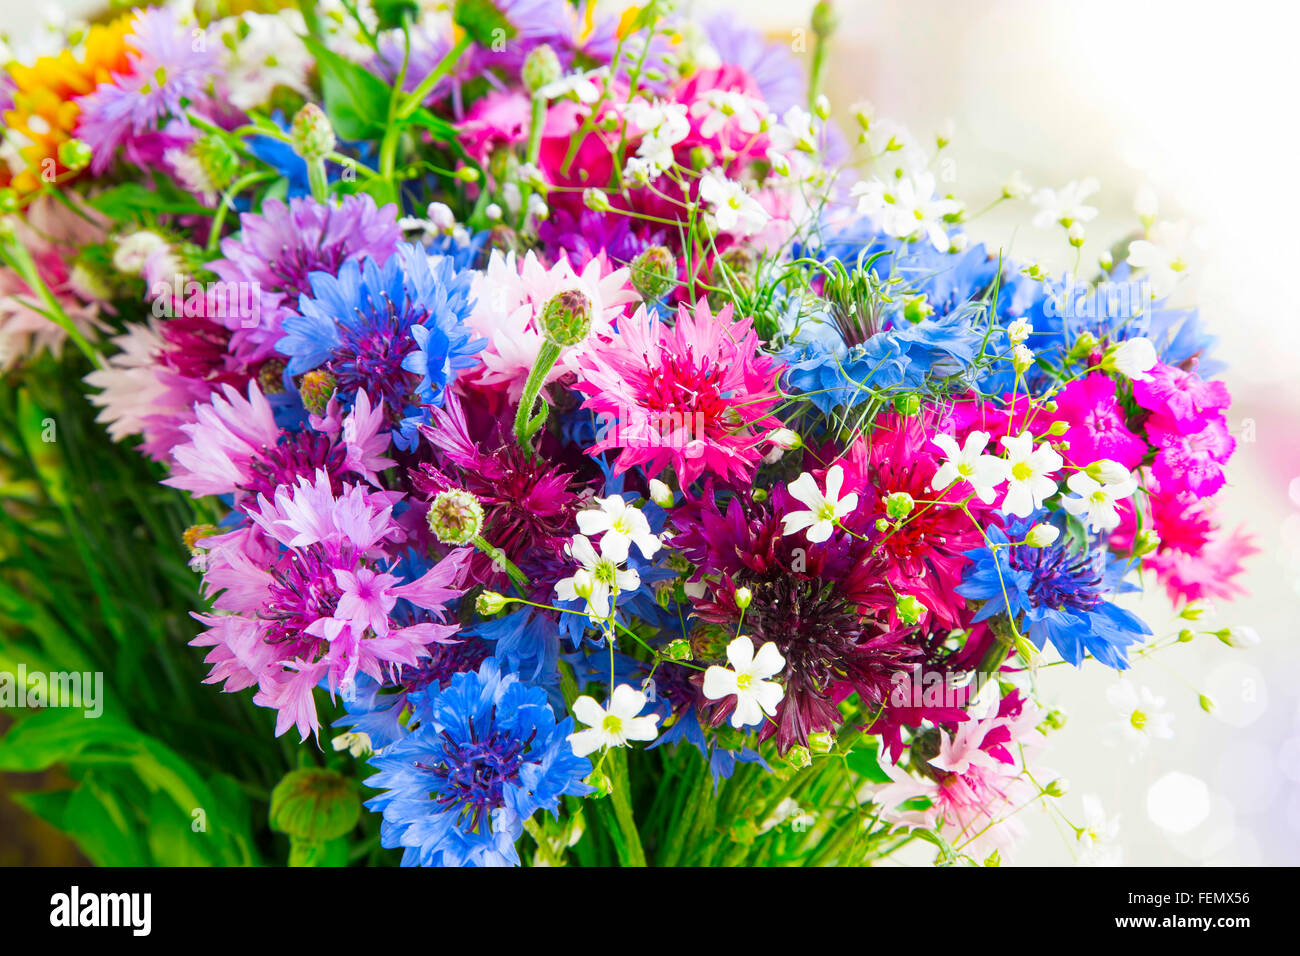 Spring bouquet with colorful scent flowers - Stock Image